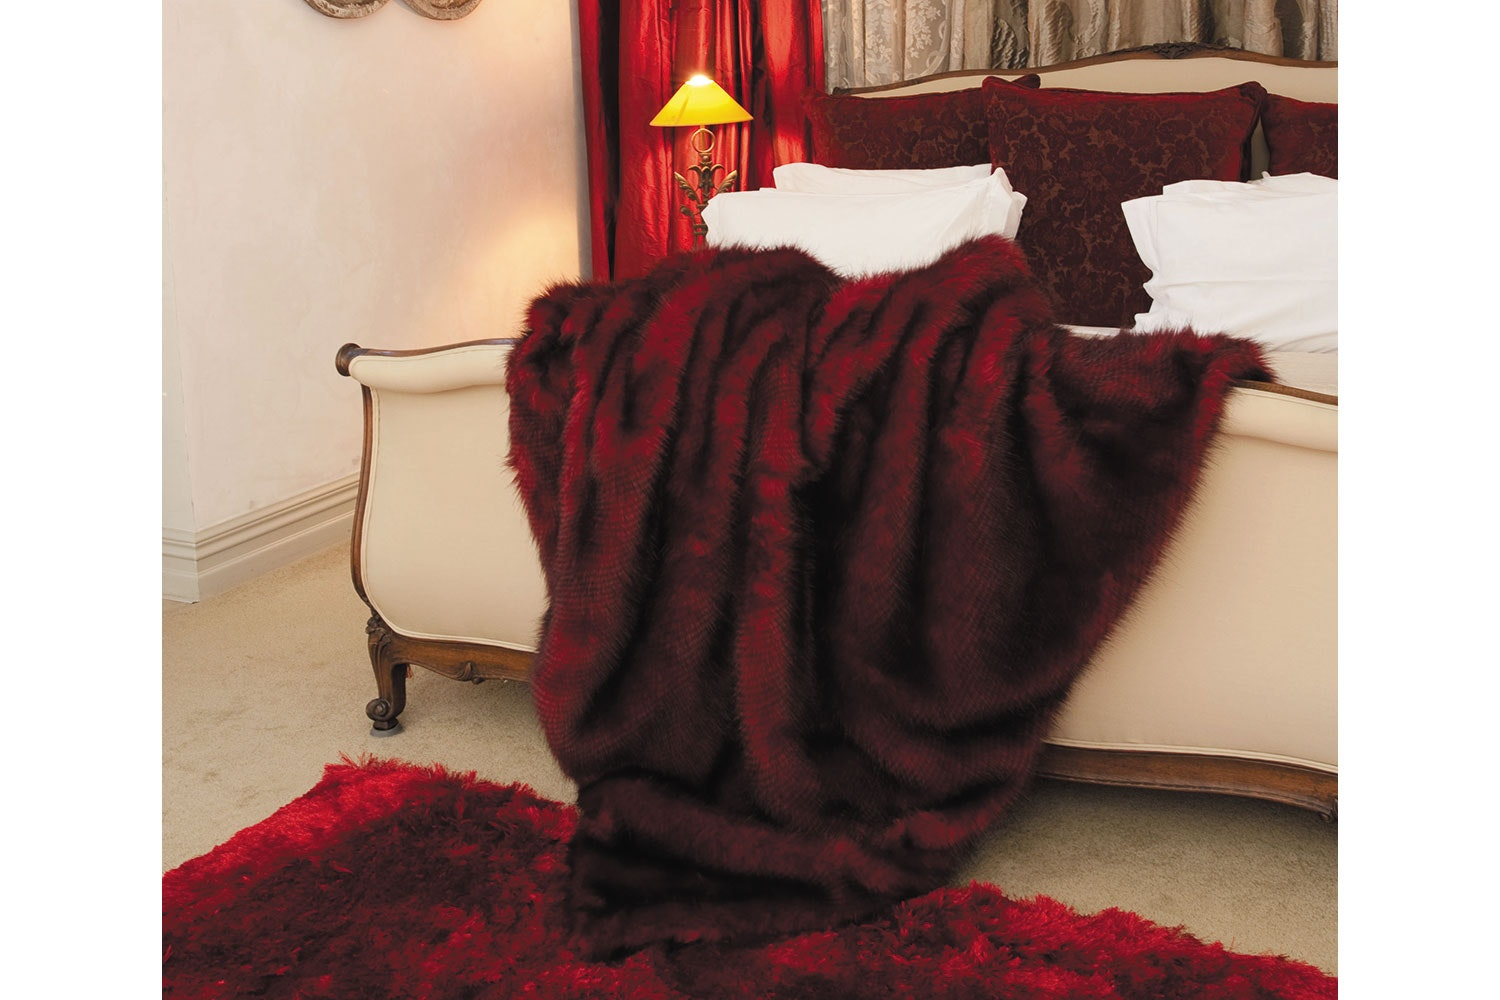 Heirloom Red Pheasant Throw By Heirloom